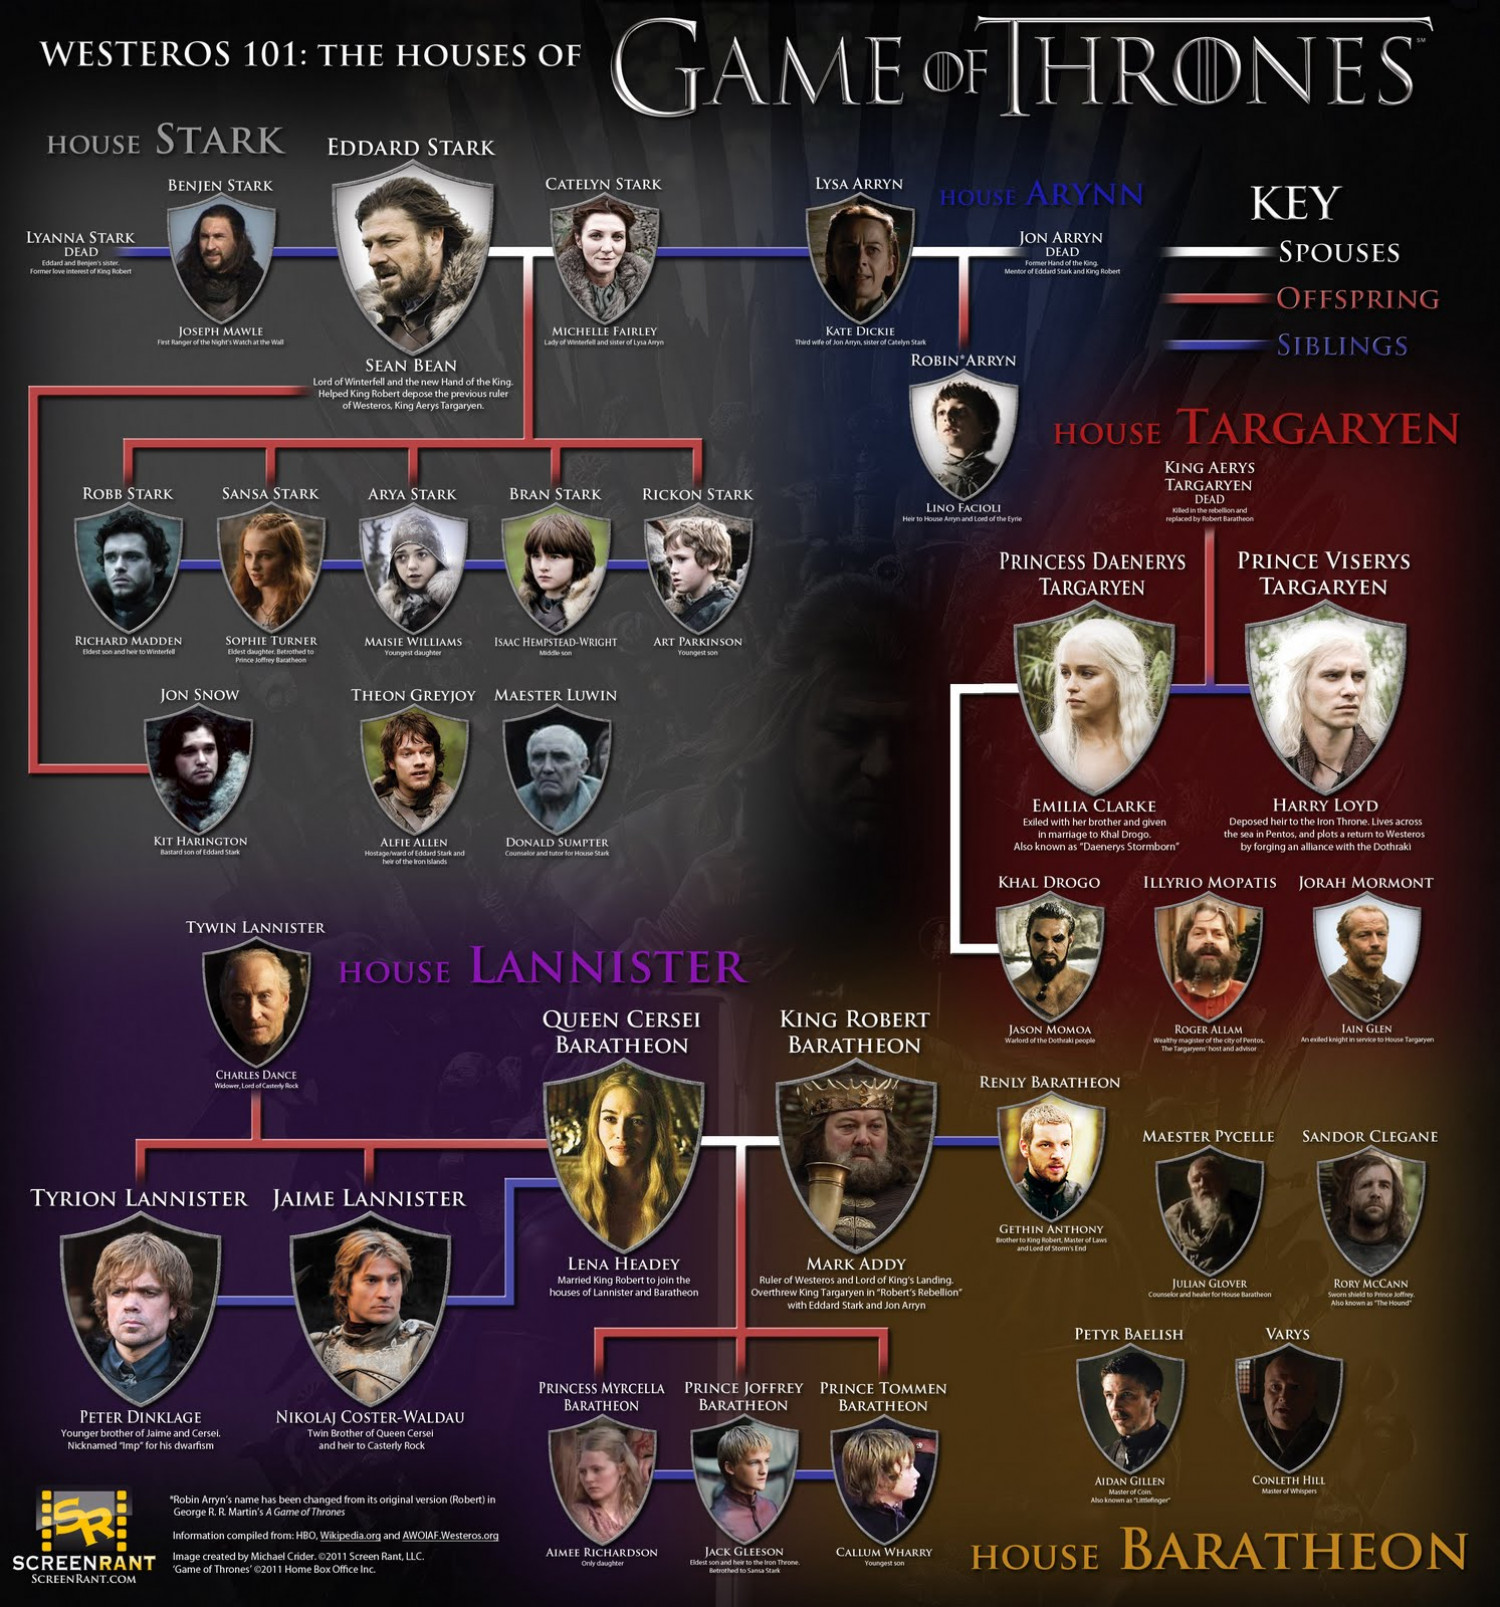 The Houses Of 'Game Of Thrones' Infographic